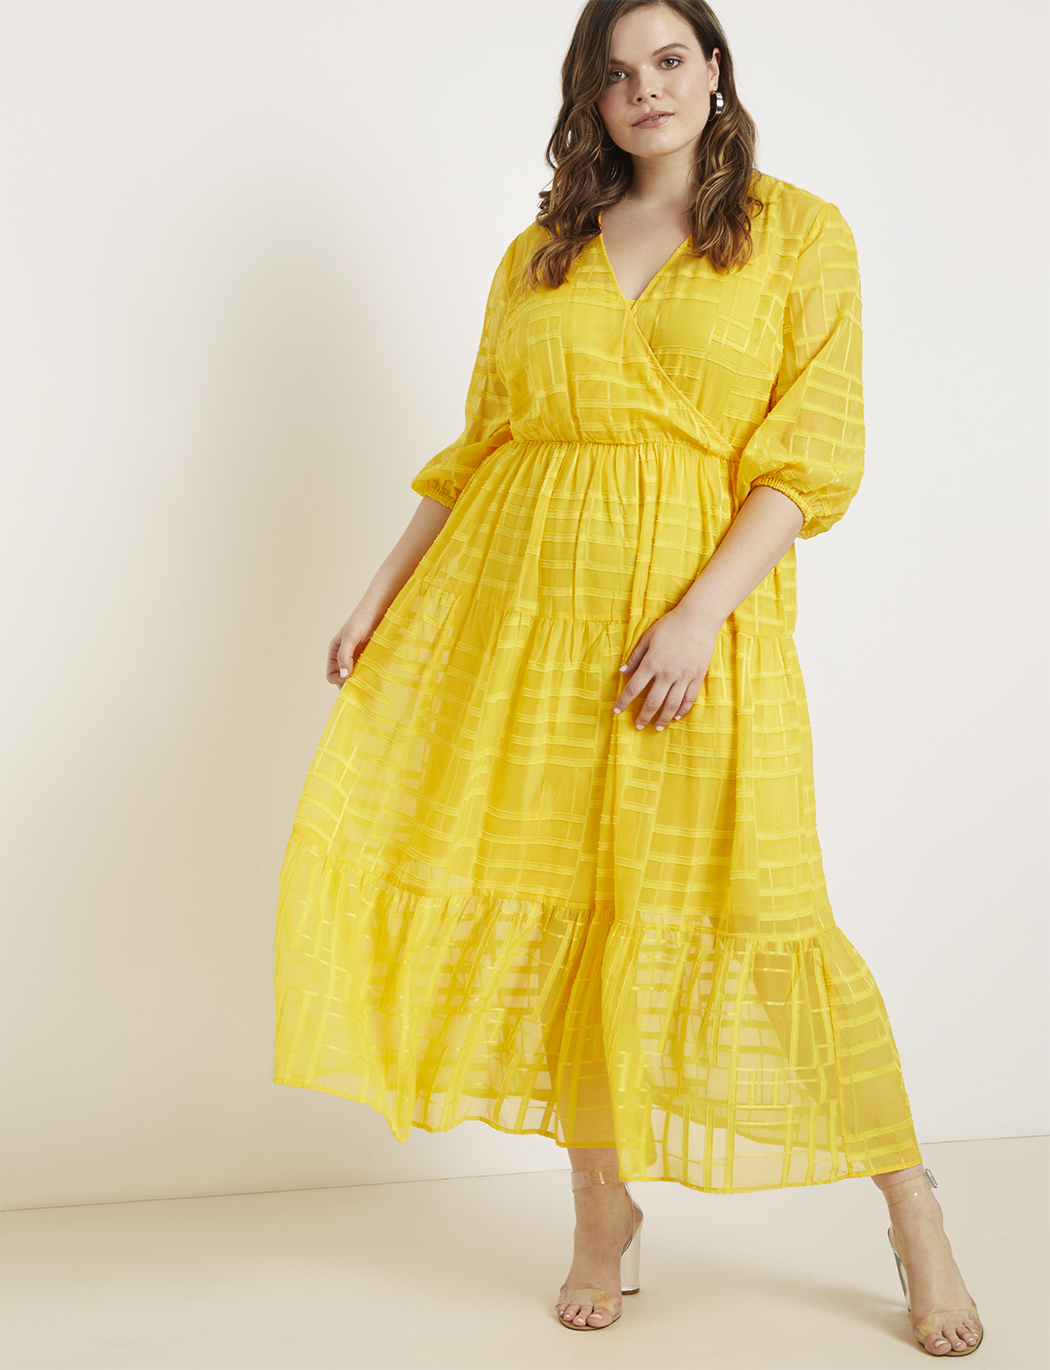 Maxi Dress with Puff Sleeves | Women\'s Plus Size Dresses | ELOQUII